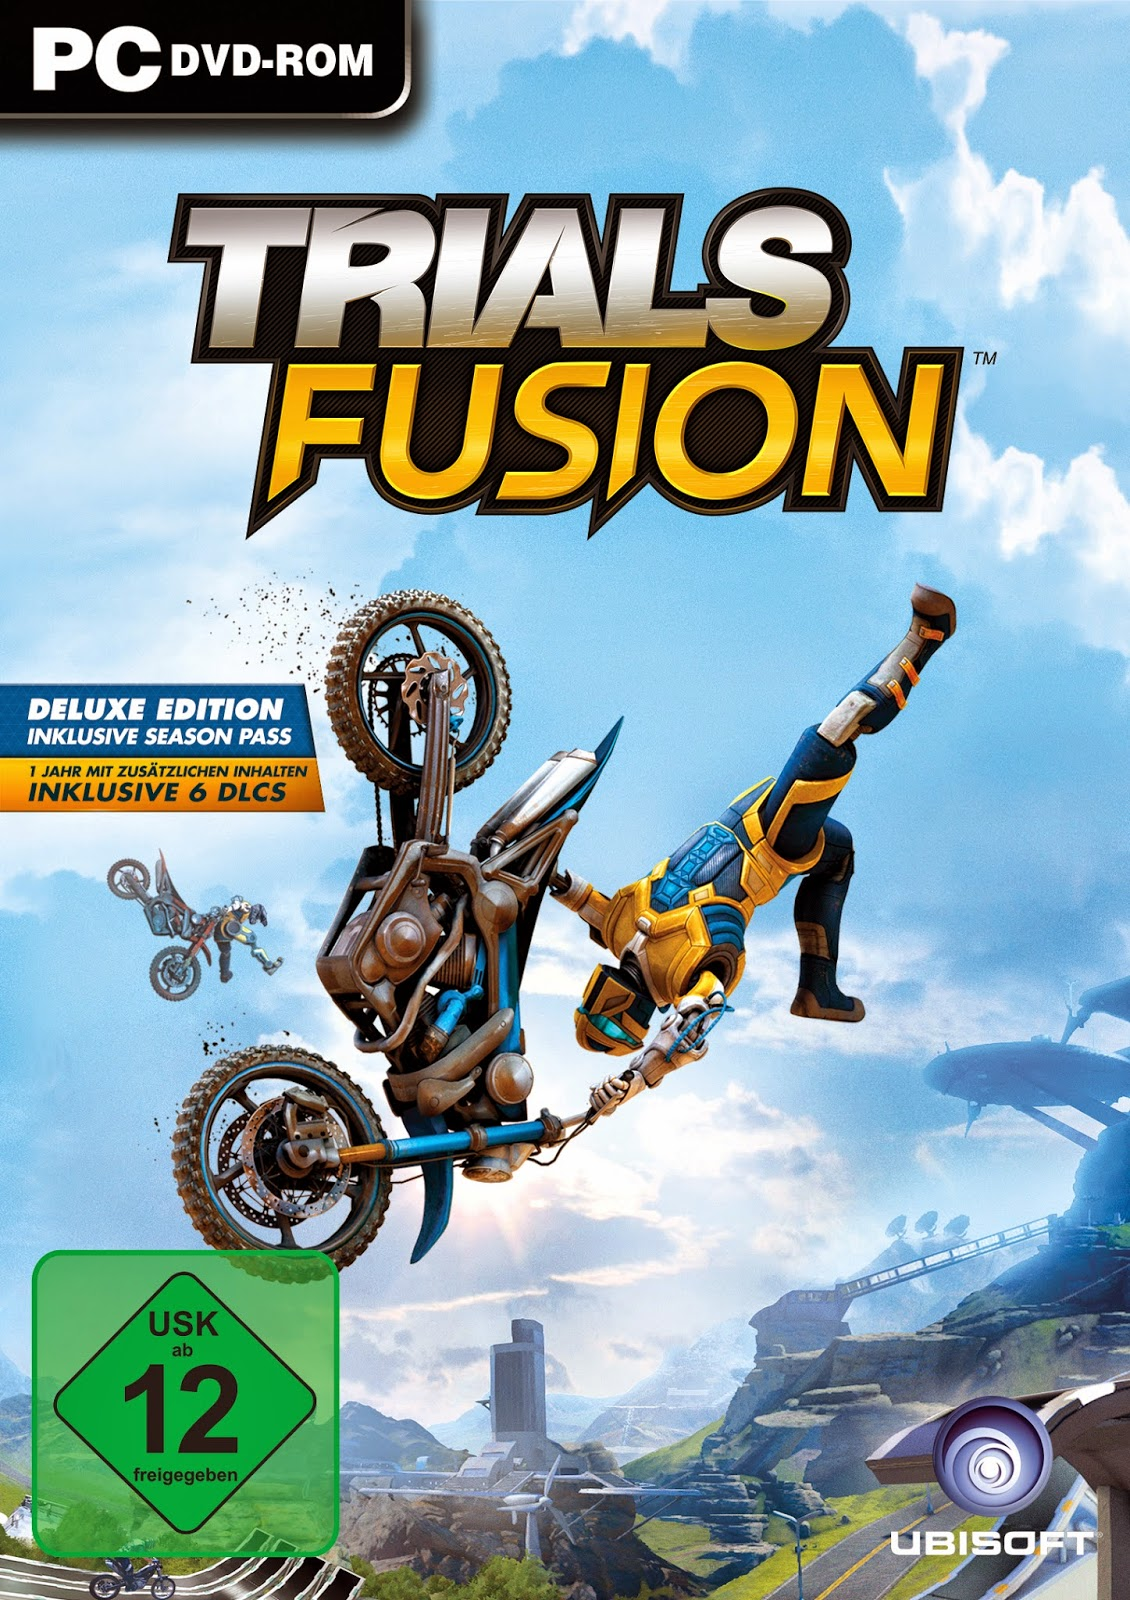 Trials Fusion Welcome To The Abyss PC Descargar